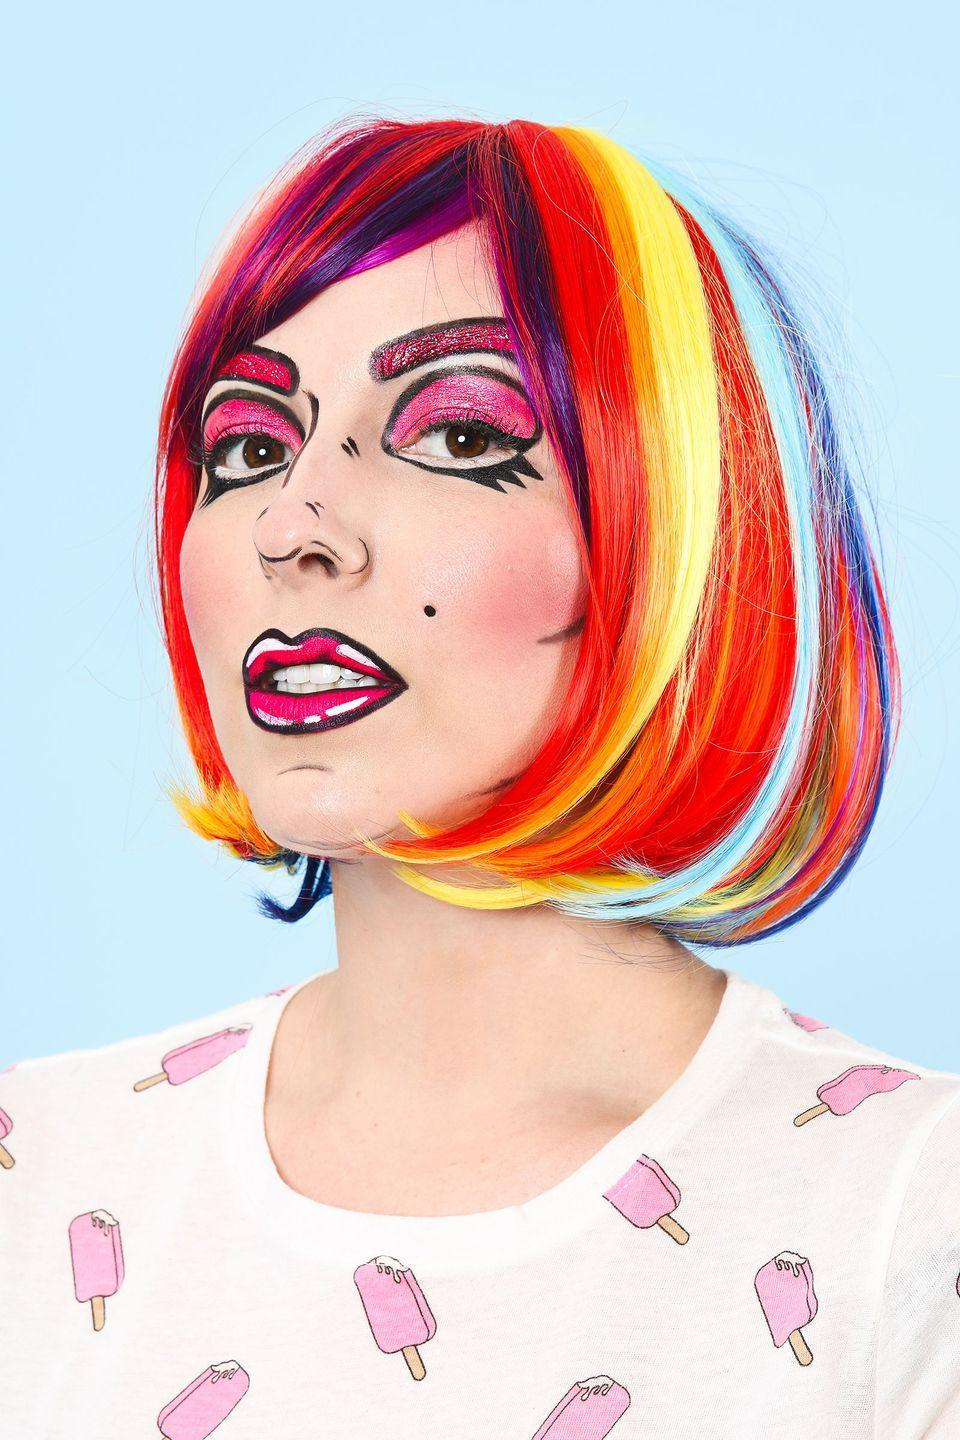 """<p>You'll look like you stepped out of a comic book thanks to this sensational makeup tutorial. Cap it off with a super-vibrant wig and clothes in bright colors with oversized elements, like big buttons.</p><p><strong>Get the tutorial at <a href=""""http://keikolynn.com/2016/10/cartoon-makeup-tutorial-halloween/"""" rel=""""nofollow noopener"""" target=""""_blank"""" data-ylk=""""slk:Keiko Lynn"""" class=""""link rapid-noclick-resp"""">Keiko Lynn</a>.</strong></p><p><a class=""""link rapid-noclick-resp"""" href=""""https://www.amazon.com/Straight-Multi-Color-Comfortable-Breathable-Durable-Rose/dp/B073Z6ZSR8/ref=sr_1_17?tag=syn-yahoo-20&ascsubtag=%5Bartid%7C10050.g.4571%5Bsrc%7Cyahoo-us"""" rel=""""nofollow noopener"""" target=""""_blank"""" data-ylk=""""slk:SHOP WIGS"""">SHOP WIGS</a><br></p>"""